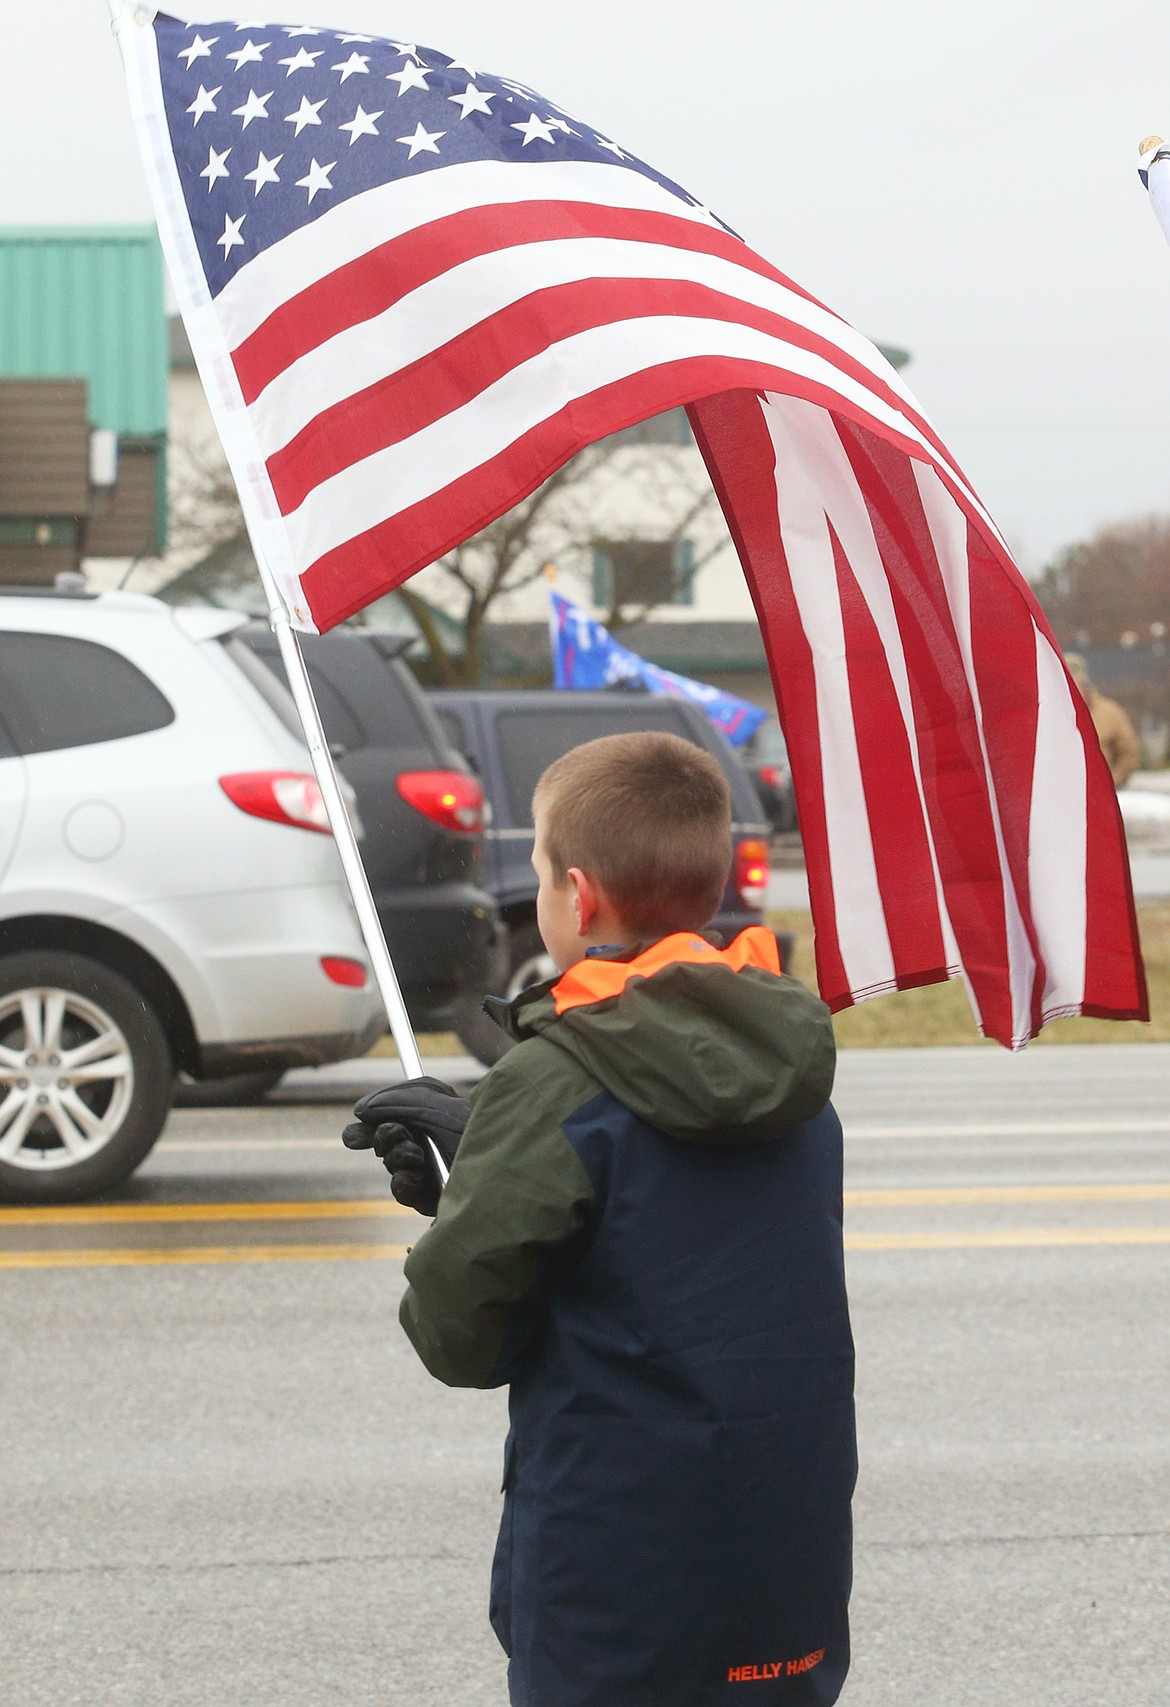 Tyson Schmalz waves a flag as he stands along U.S.95 Wednesday.